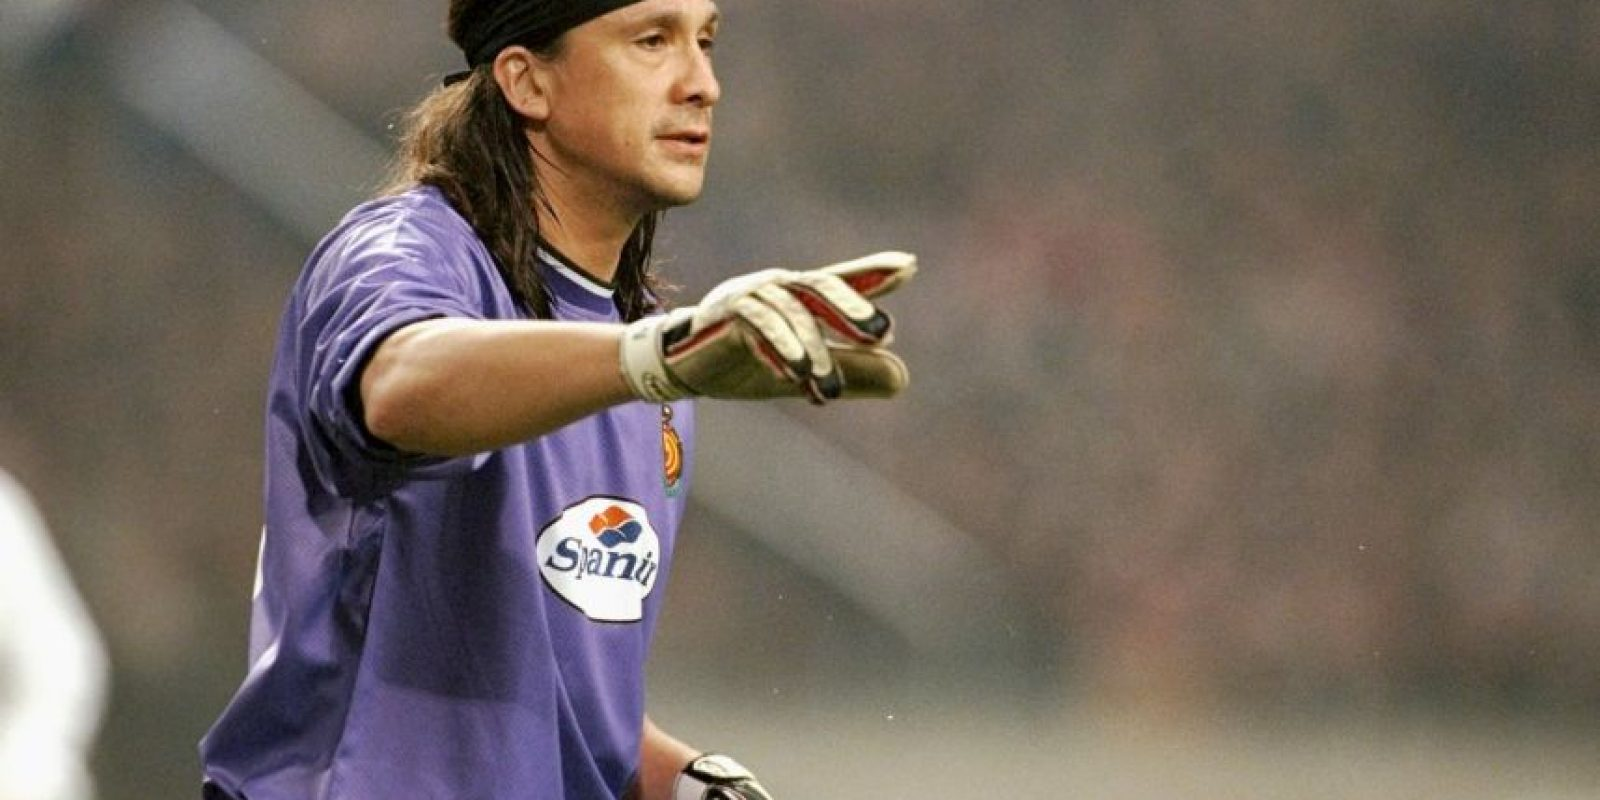 9. Germán Burgos (Futbolista argentino) Foto: Getty Images